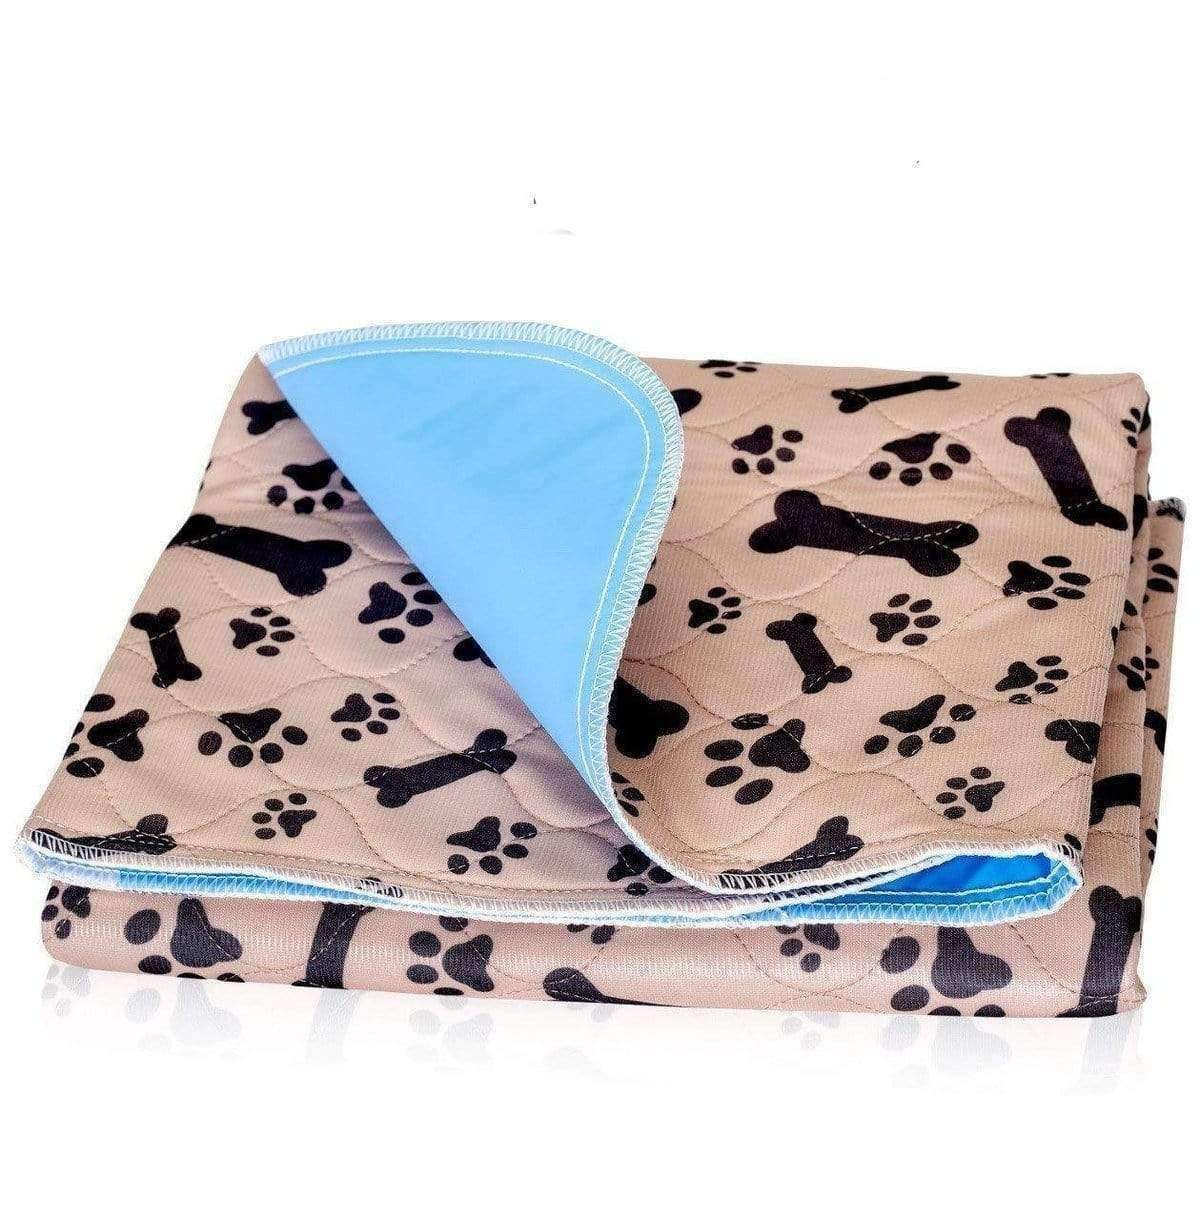 Washable Dog Pee Pad